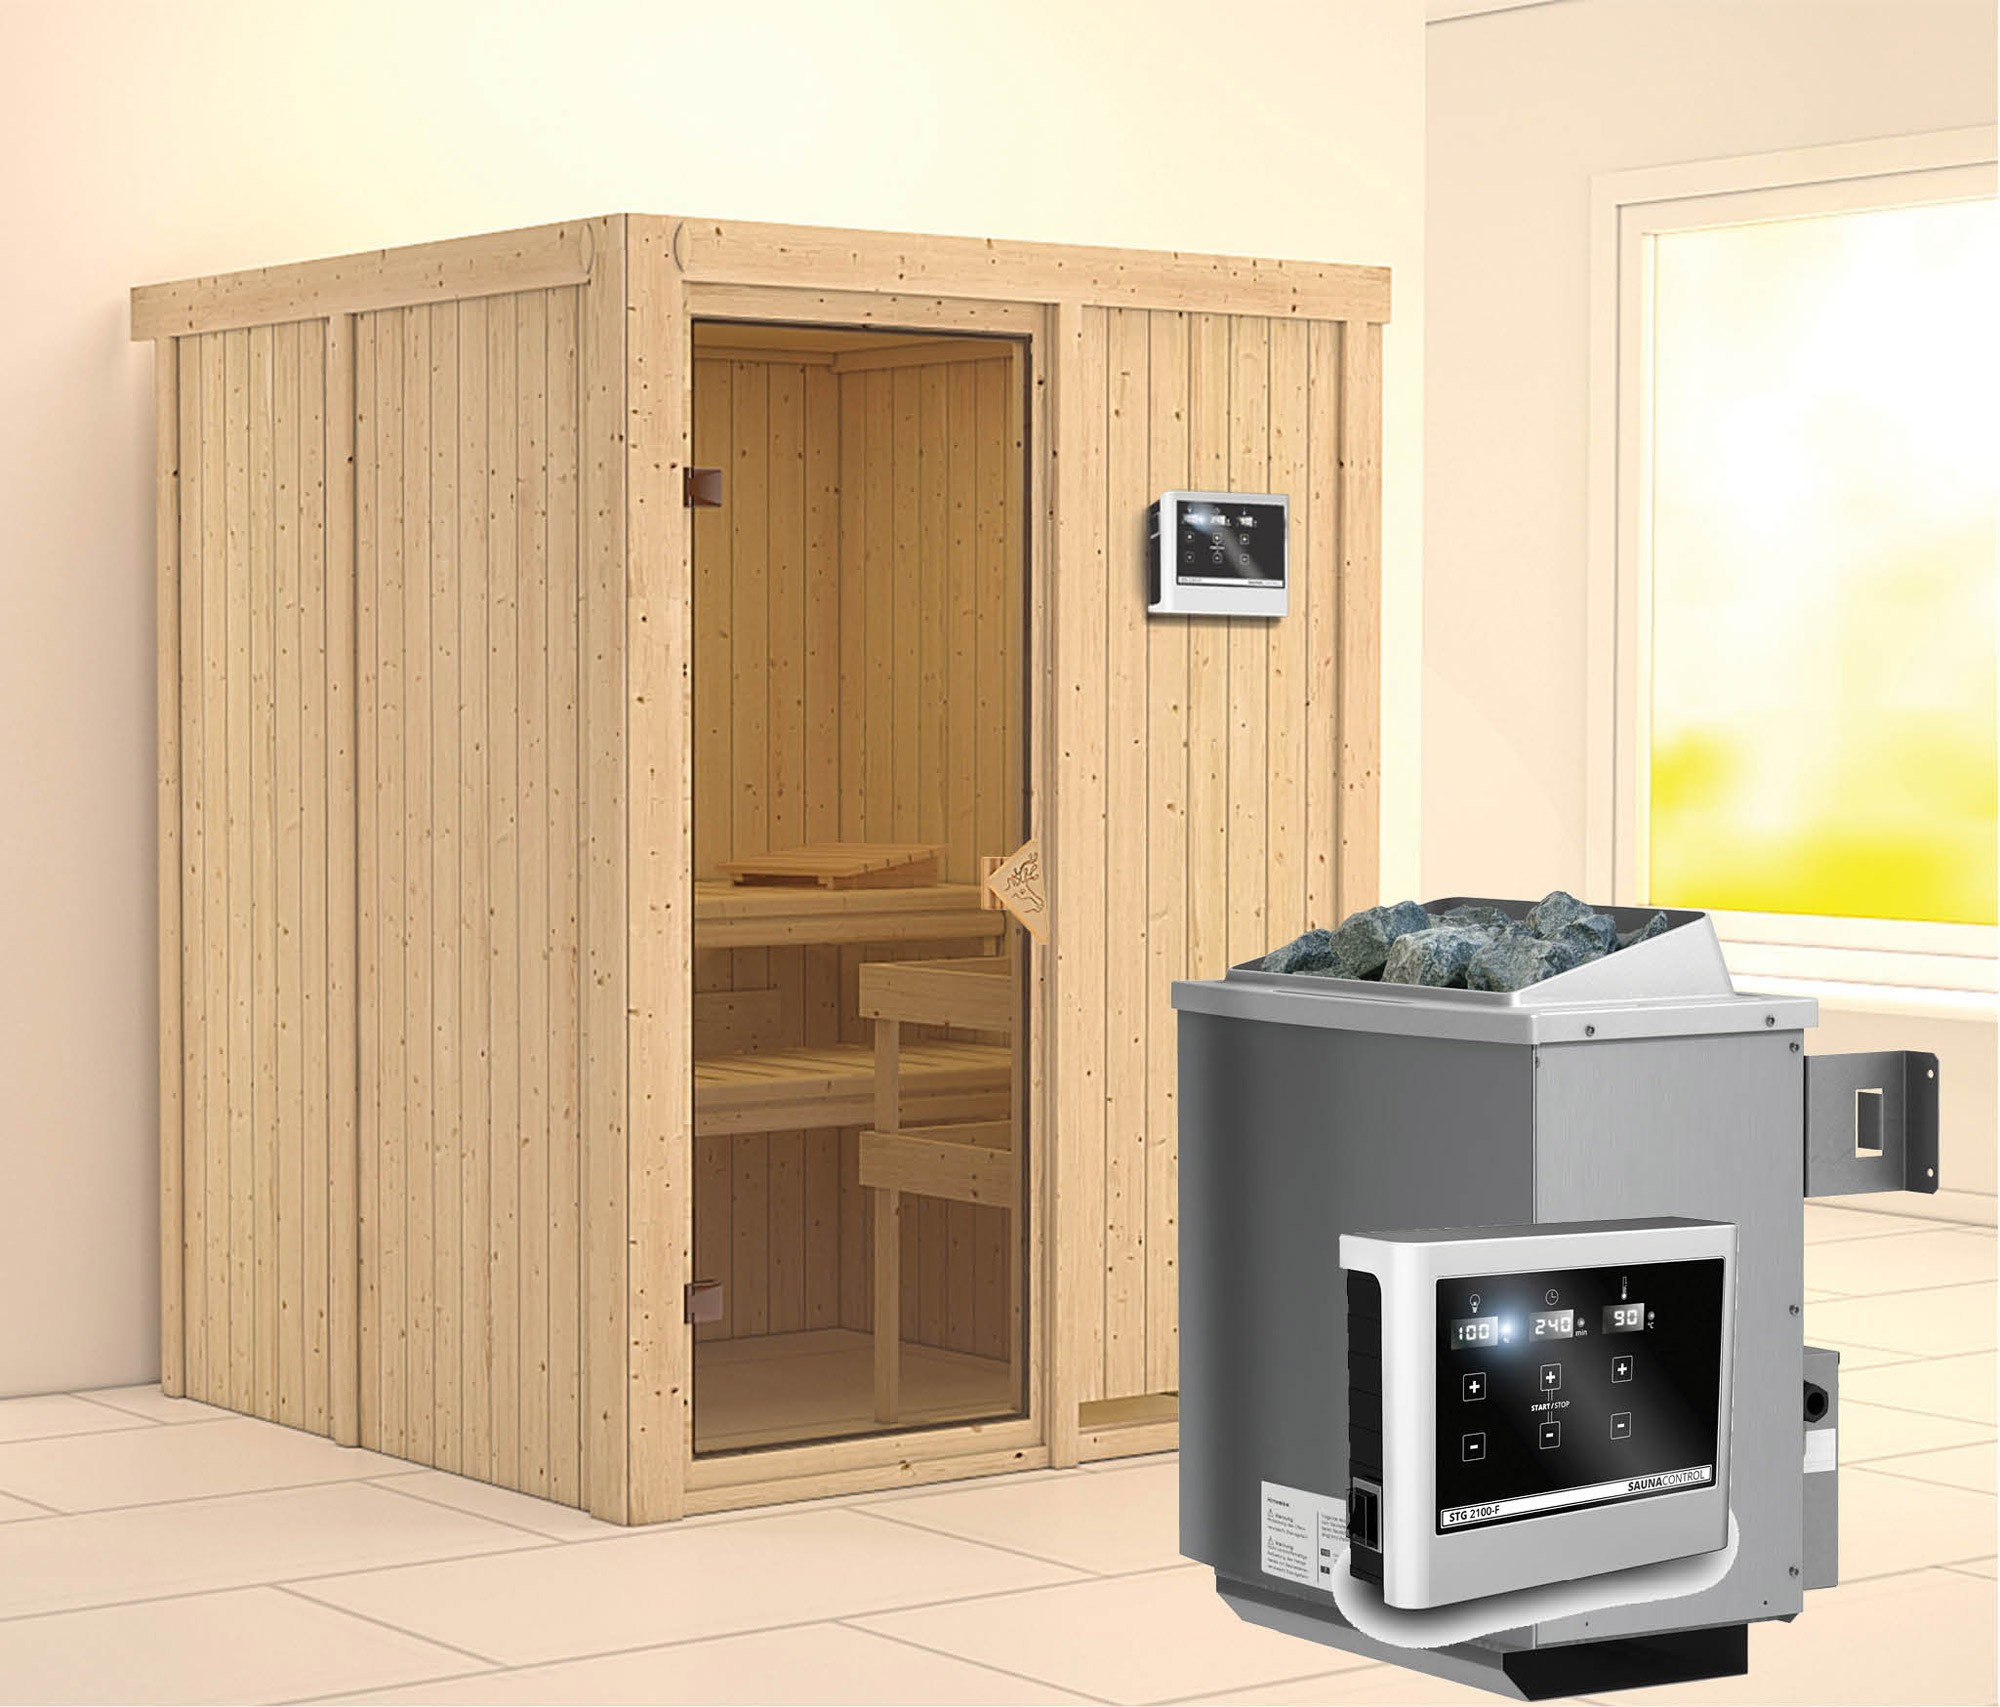 karibu sauna norin 68mm mit ofen 9kw extern classic t r. Black Bedroom Furniture Sets. Home Design Ideas